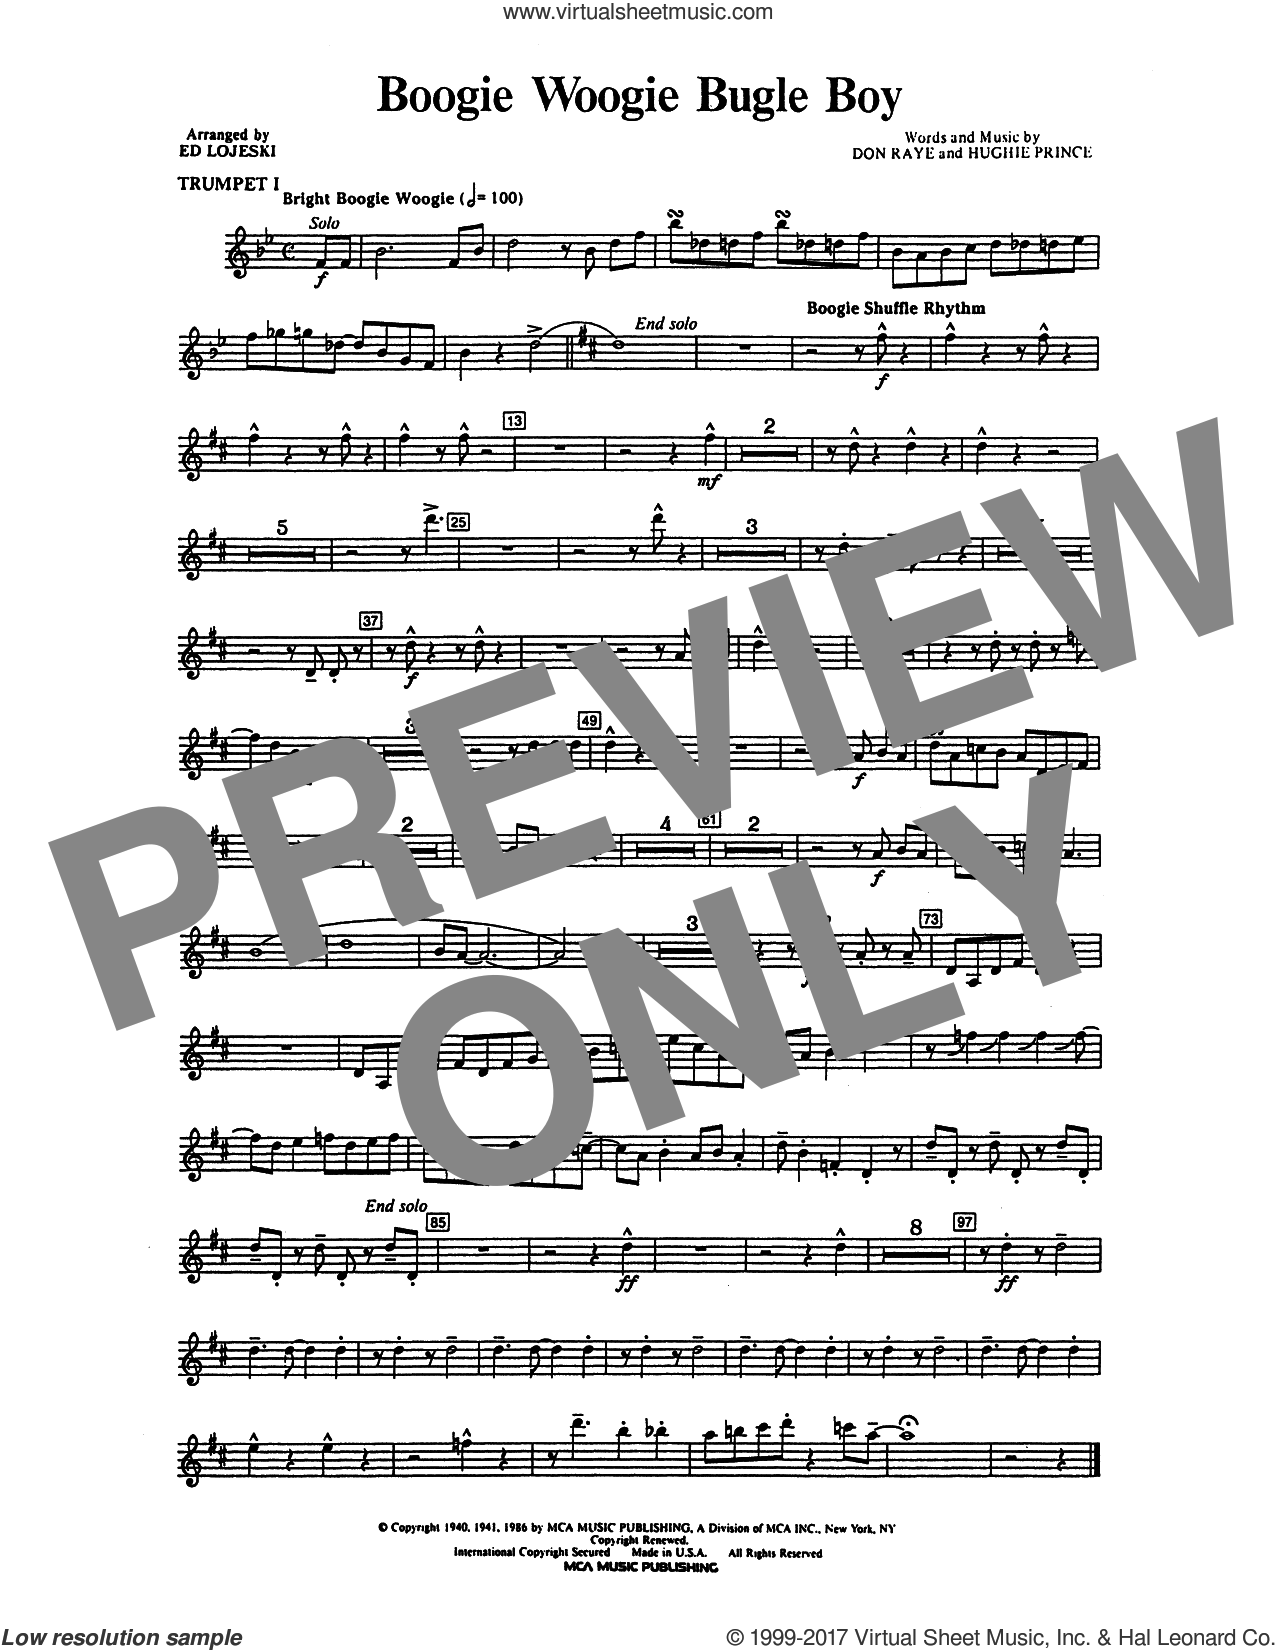 Boogie Woogie Bugle Boy (complete set of parts) sheet music for orchestra/band (Instrumental Accompaniment) by Ed Lojeski, Andrews Sisters, Bette Midler, Don Raye and Hughie Prince, intermediate skill level